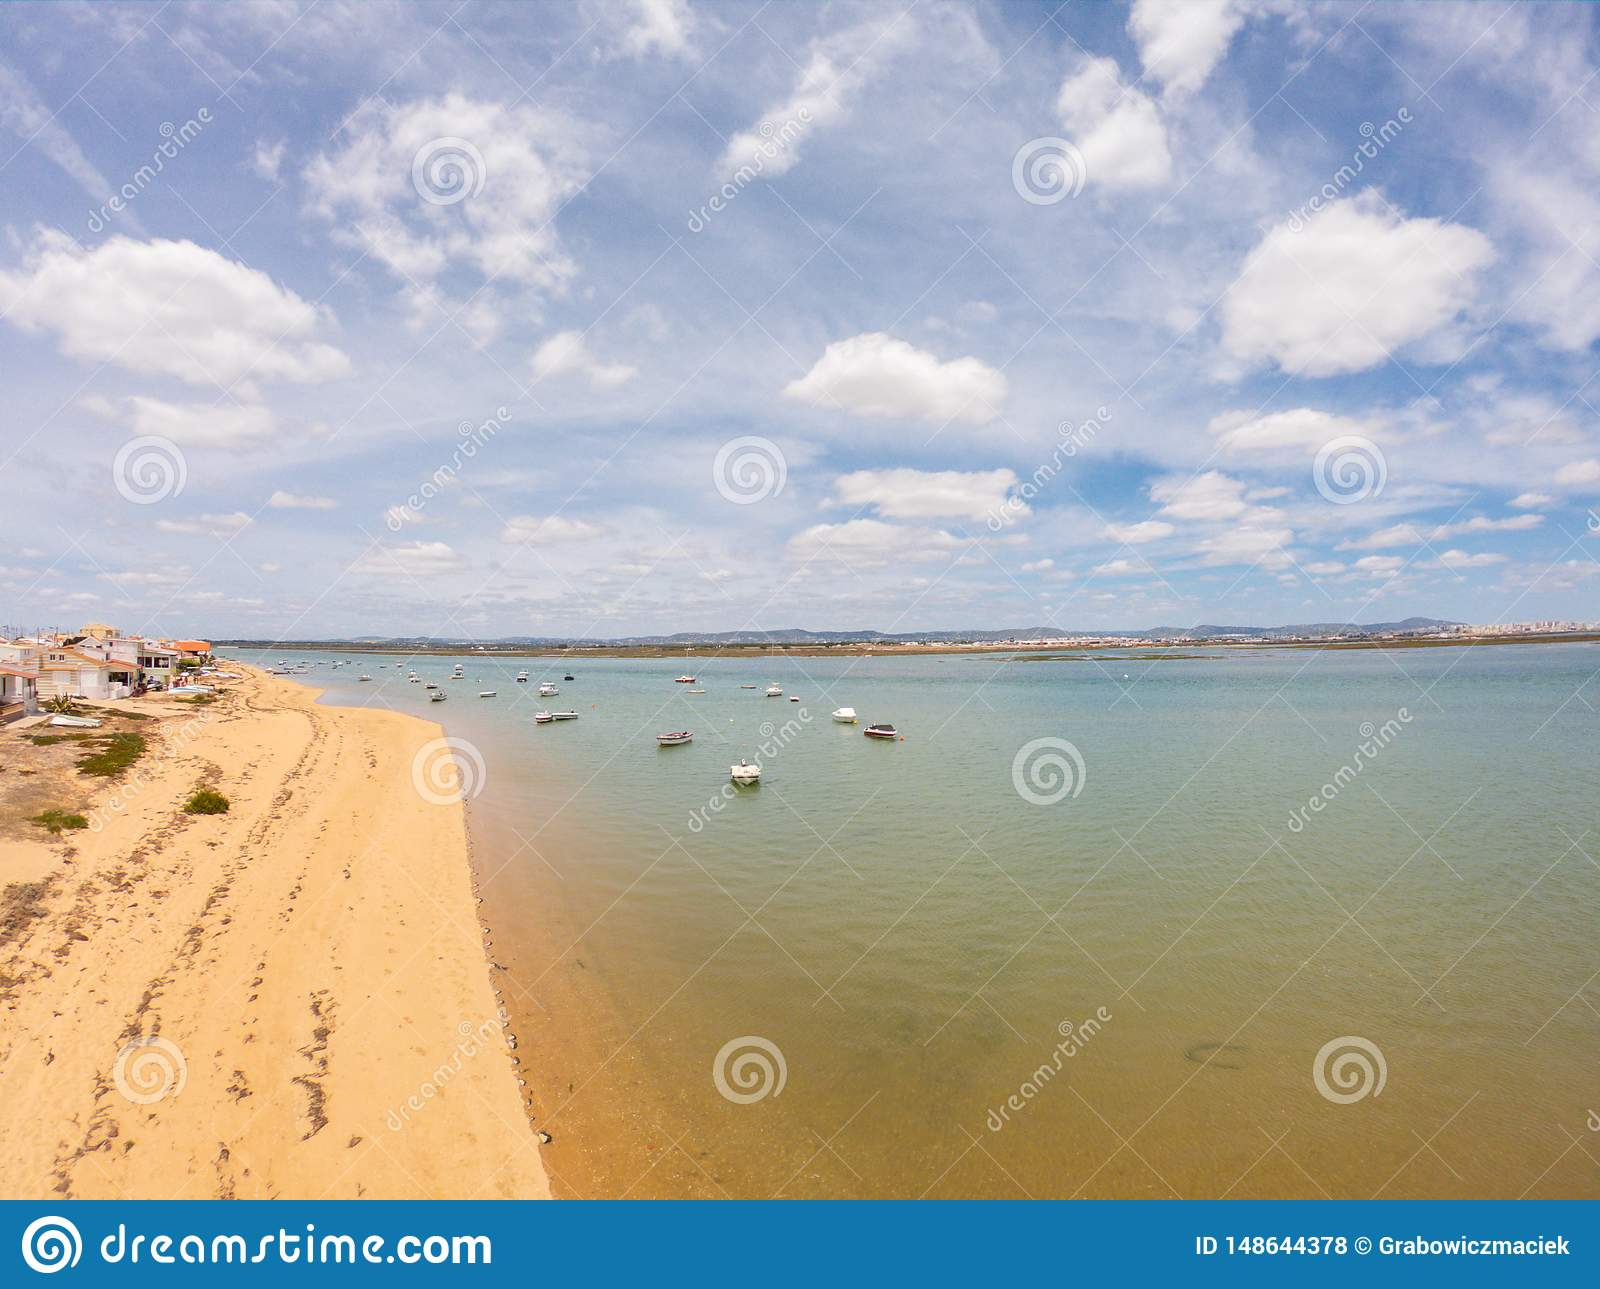 Praia De Faro, Algarve, Portugal. Aerial view on coast of ocean and beach. Boats on water, drone view